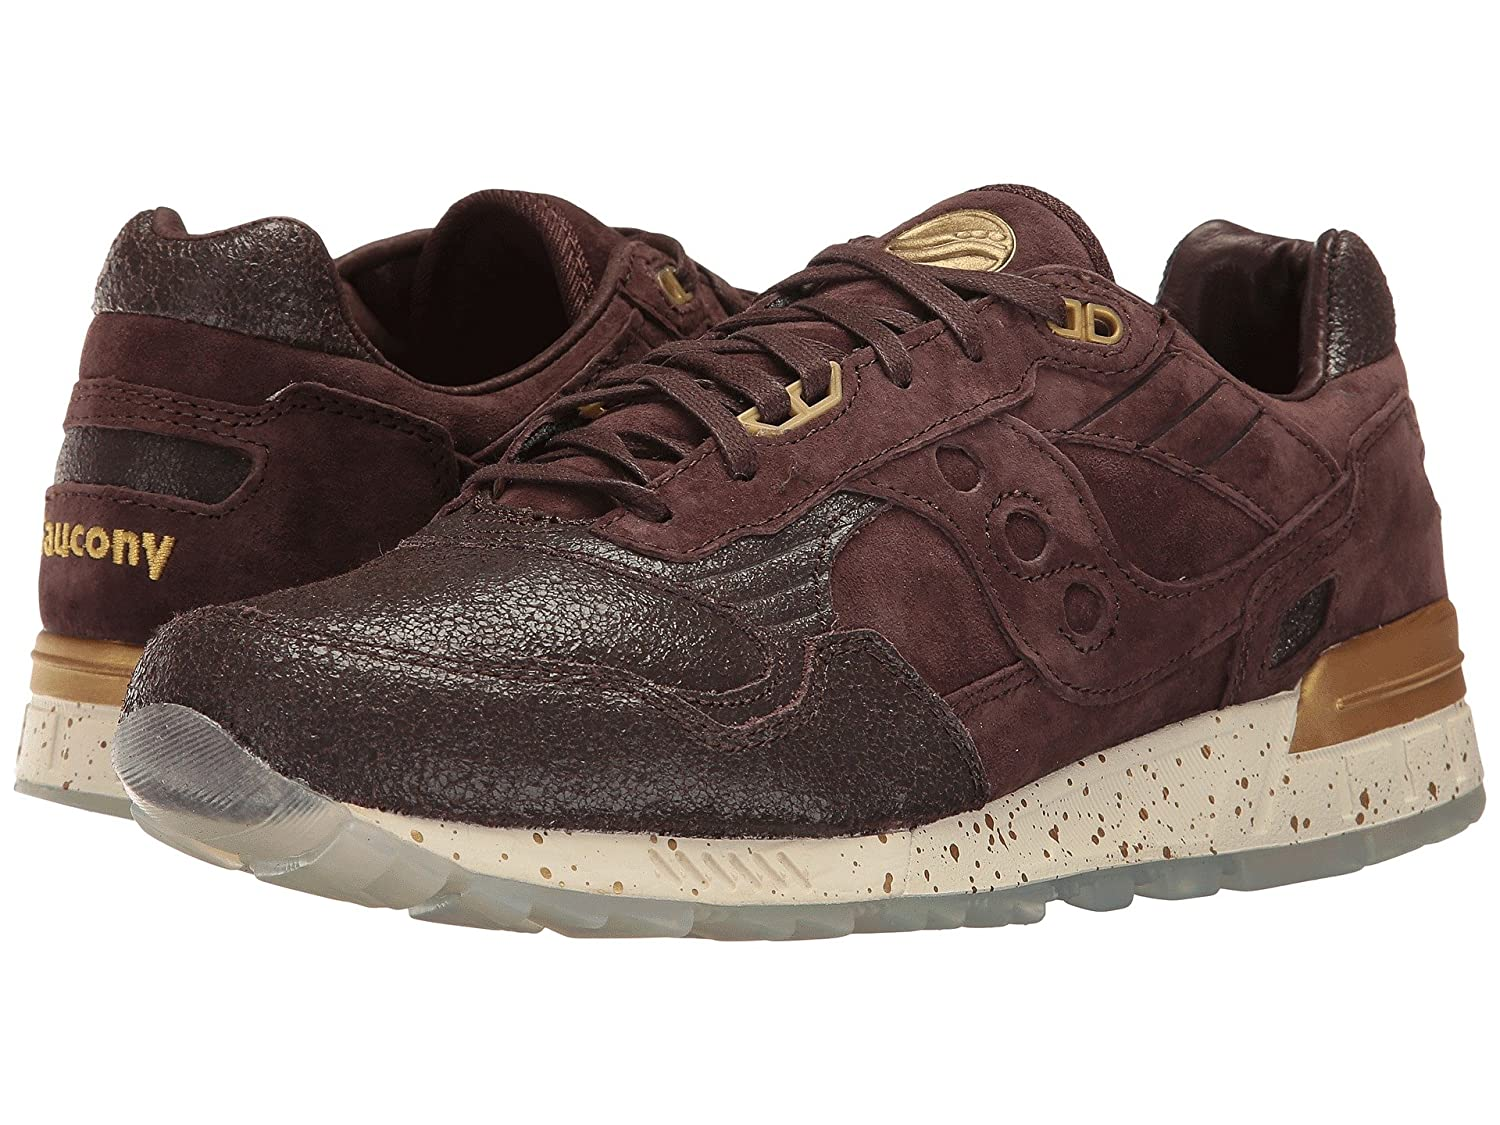 best service b3fe5 c435b Saucony Mens Shadow 5000 Low Top Lace Up Fashion Sneakers